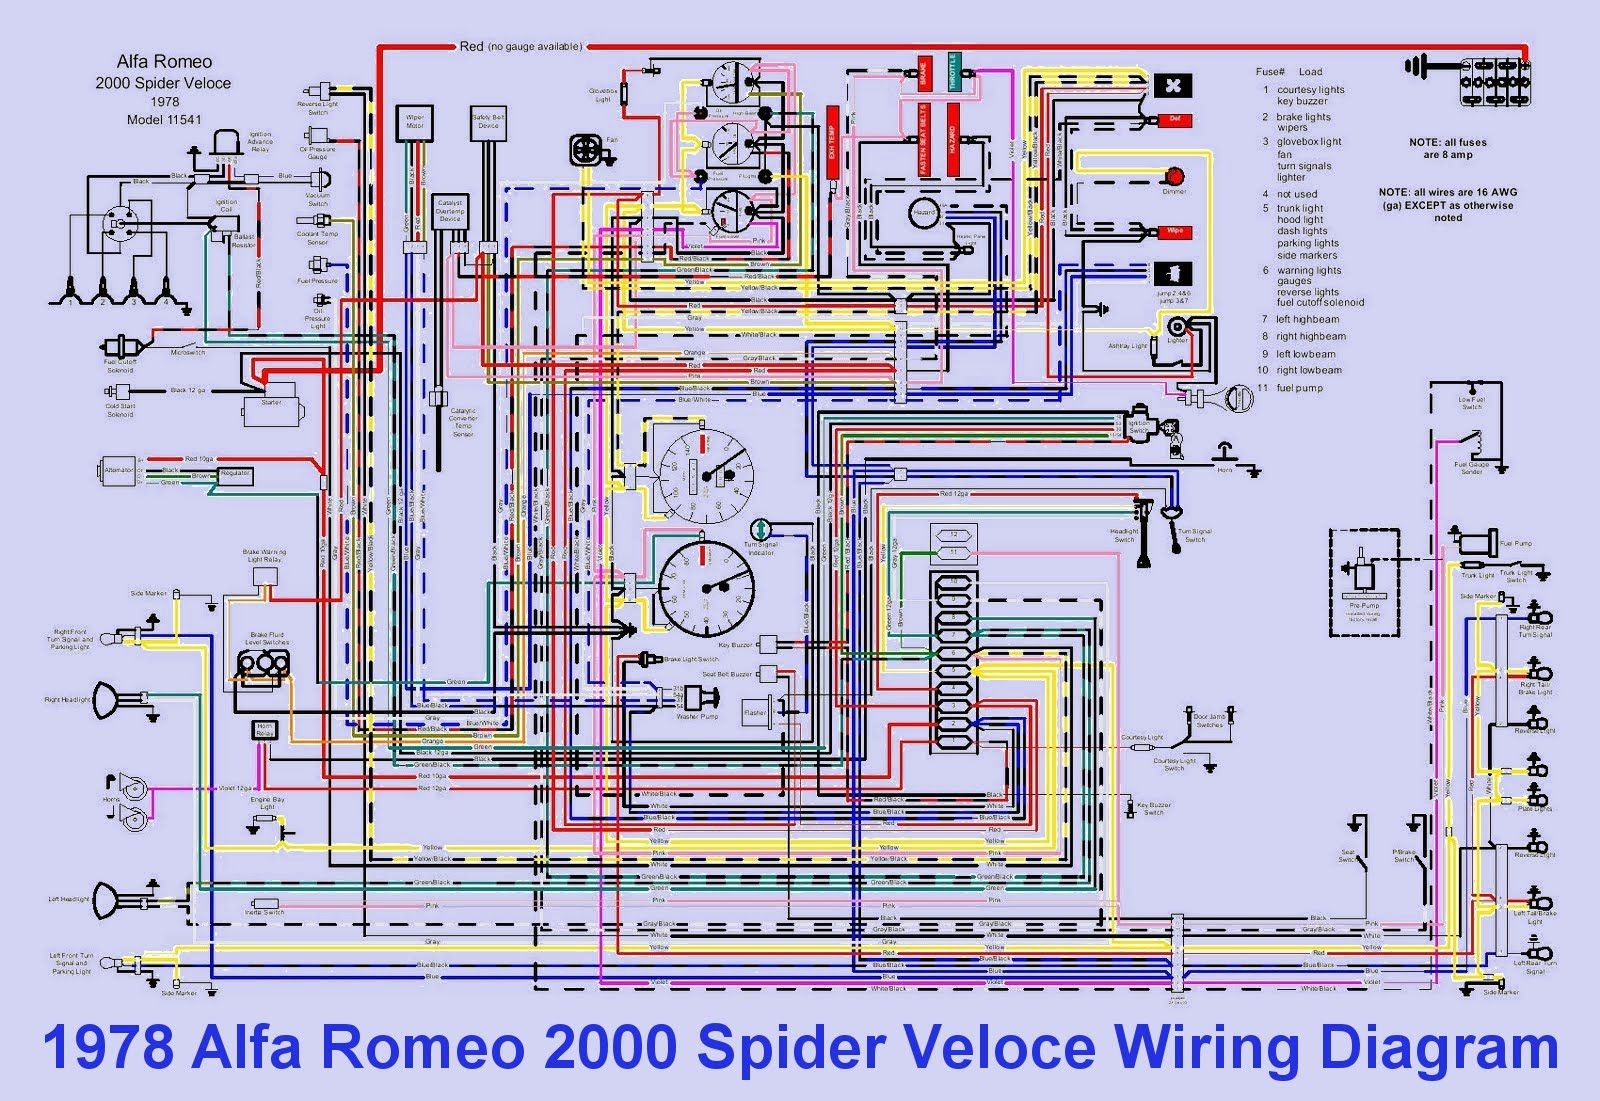 1978%2BAlfa%2BRomeo%2B2000%2BSpyder%2BWiring%2BDiagram alfa romeo wiring diagram alfa romeo blueprints \u2022 free wiring icm102 wiring diagram at panicattacktreatment.co